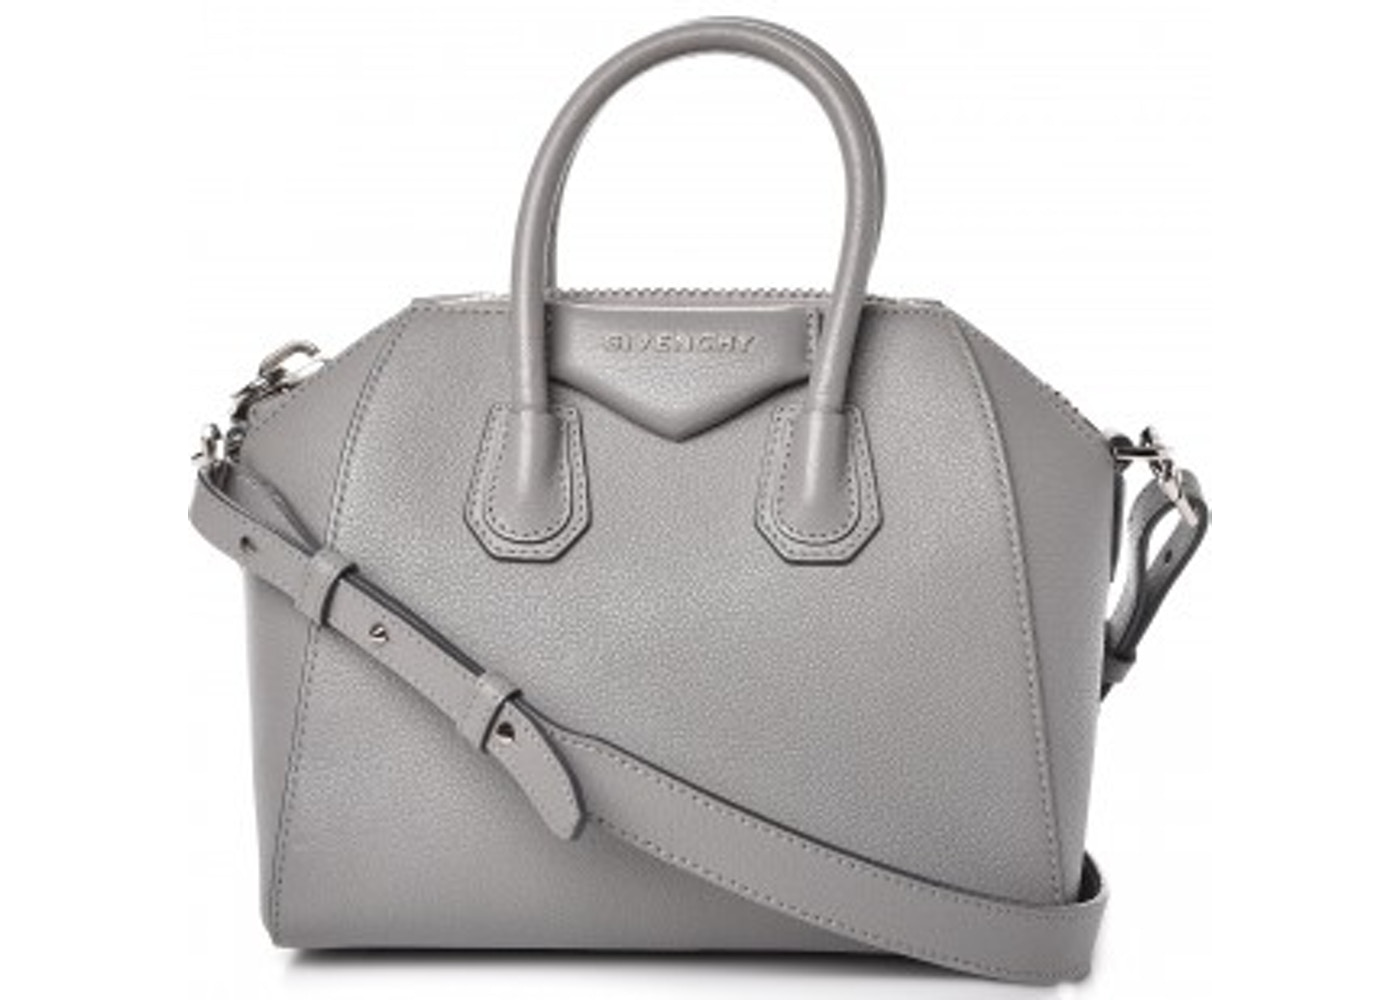 3c19532bea7b Givenchy Antigona Tote Sugar Goatskin Mini Pearl Grey. Sugar Goatskin Mini  Pearl Grey